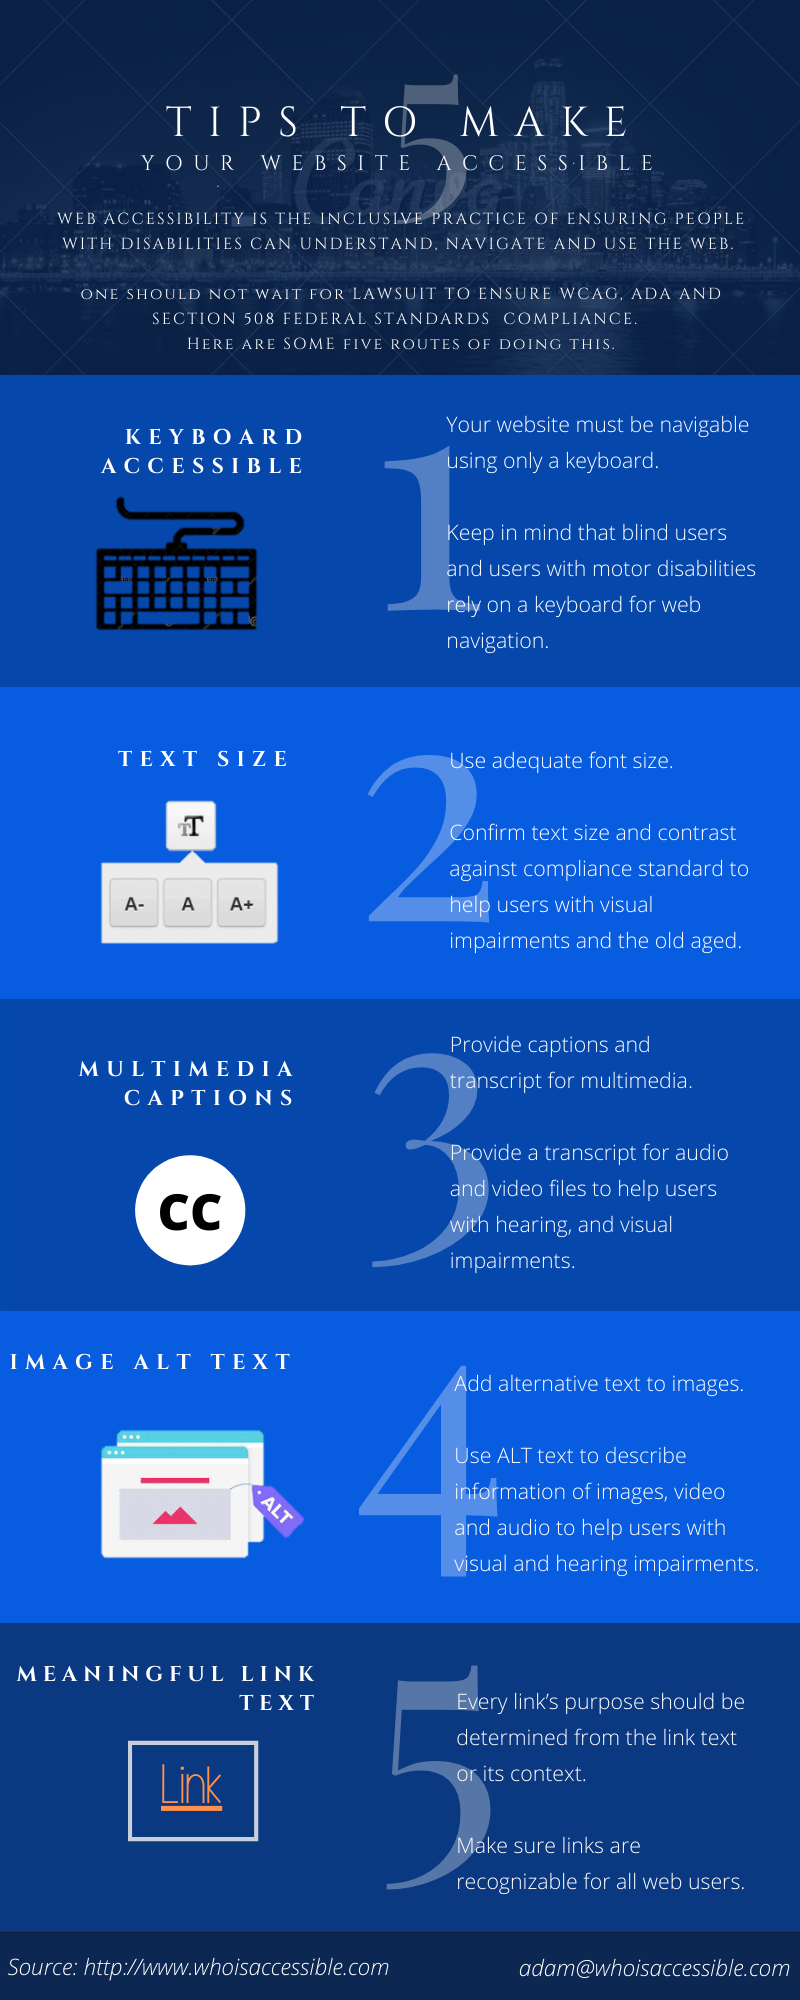 5 Tips to Make Your Web Accessible #infographic